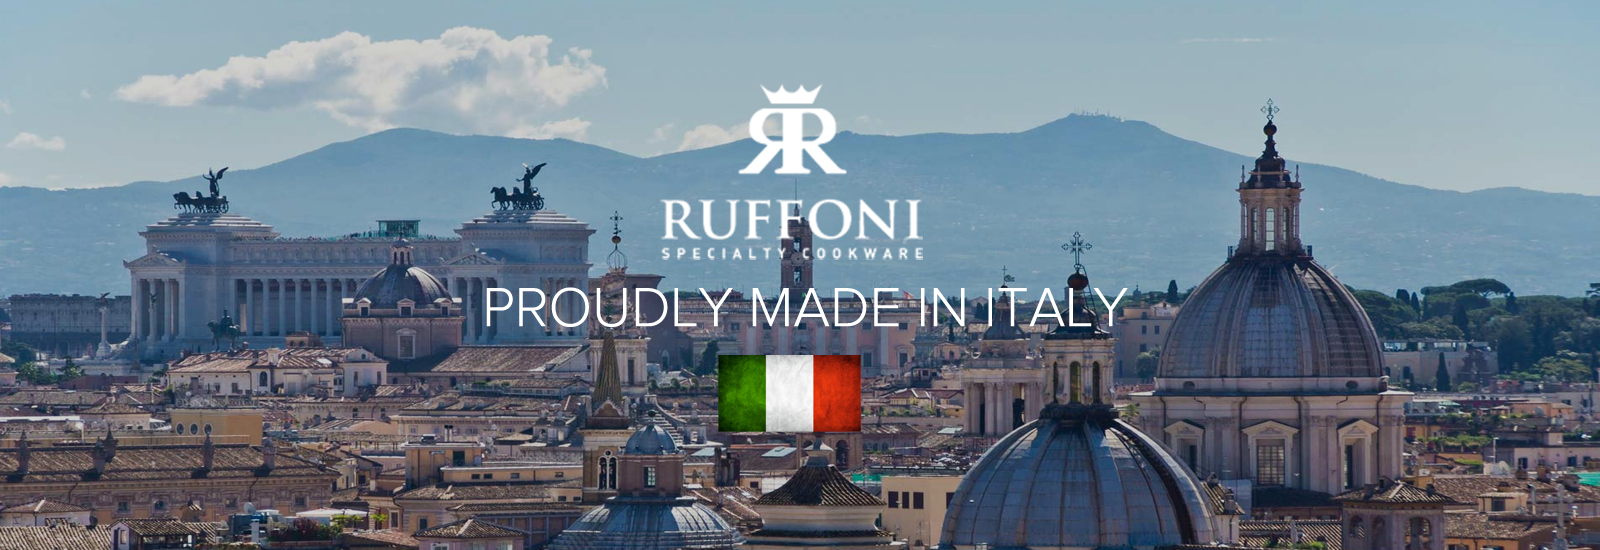 ruffoni MADE IN ITALY